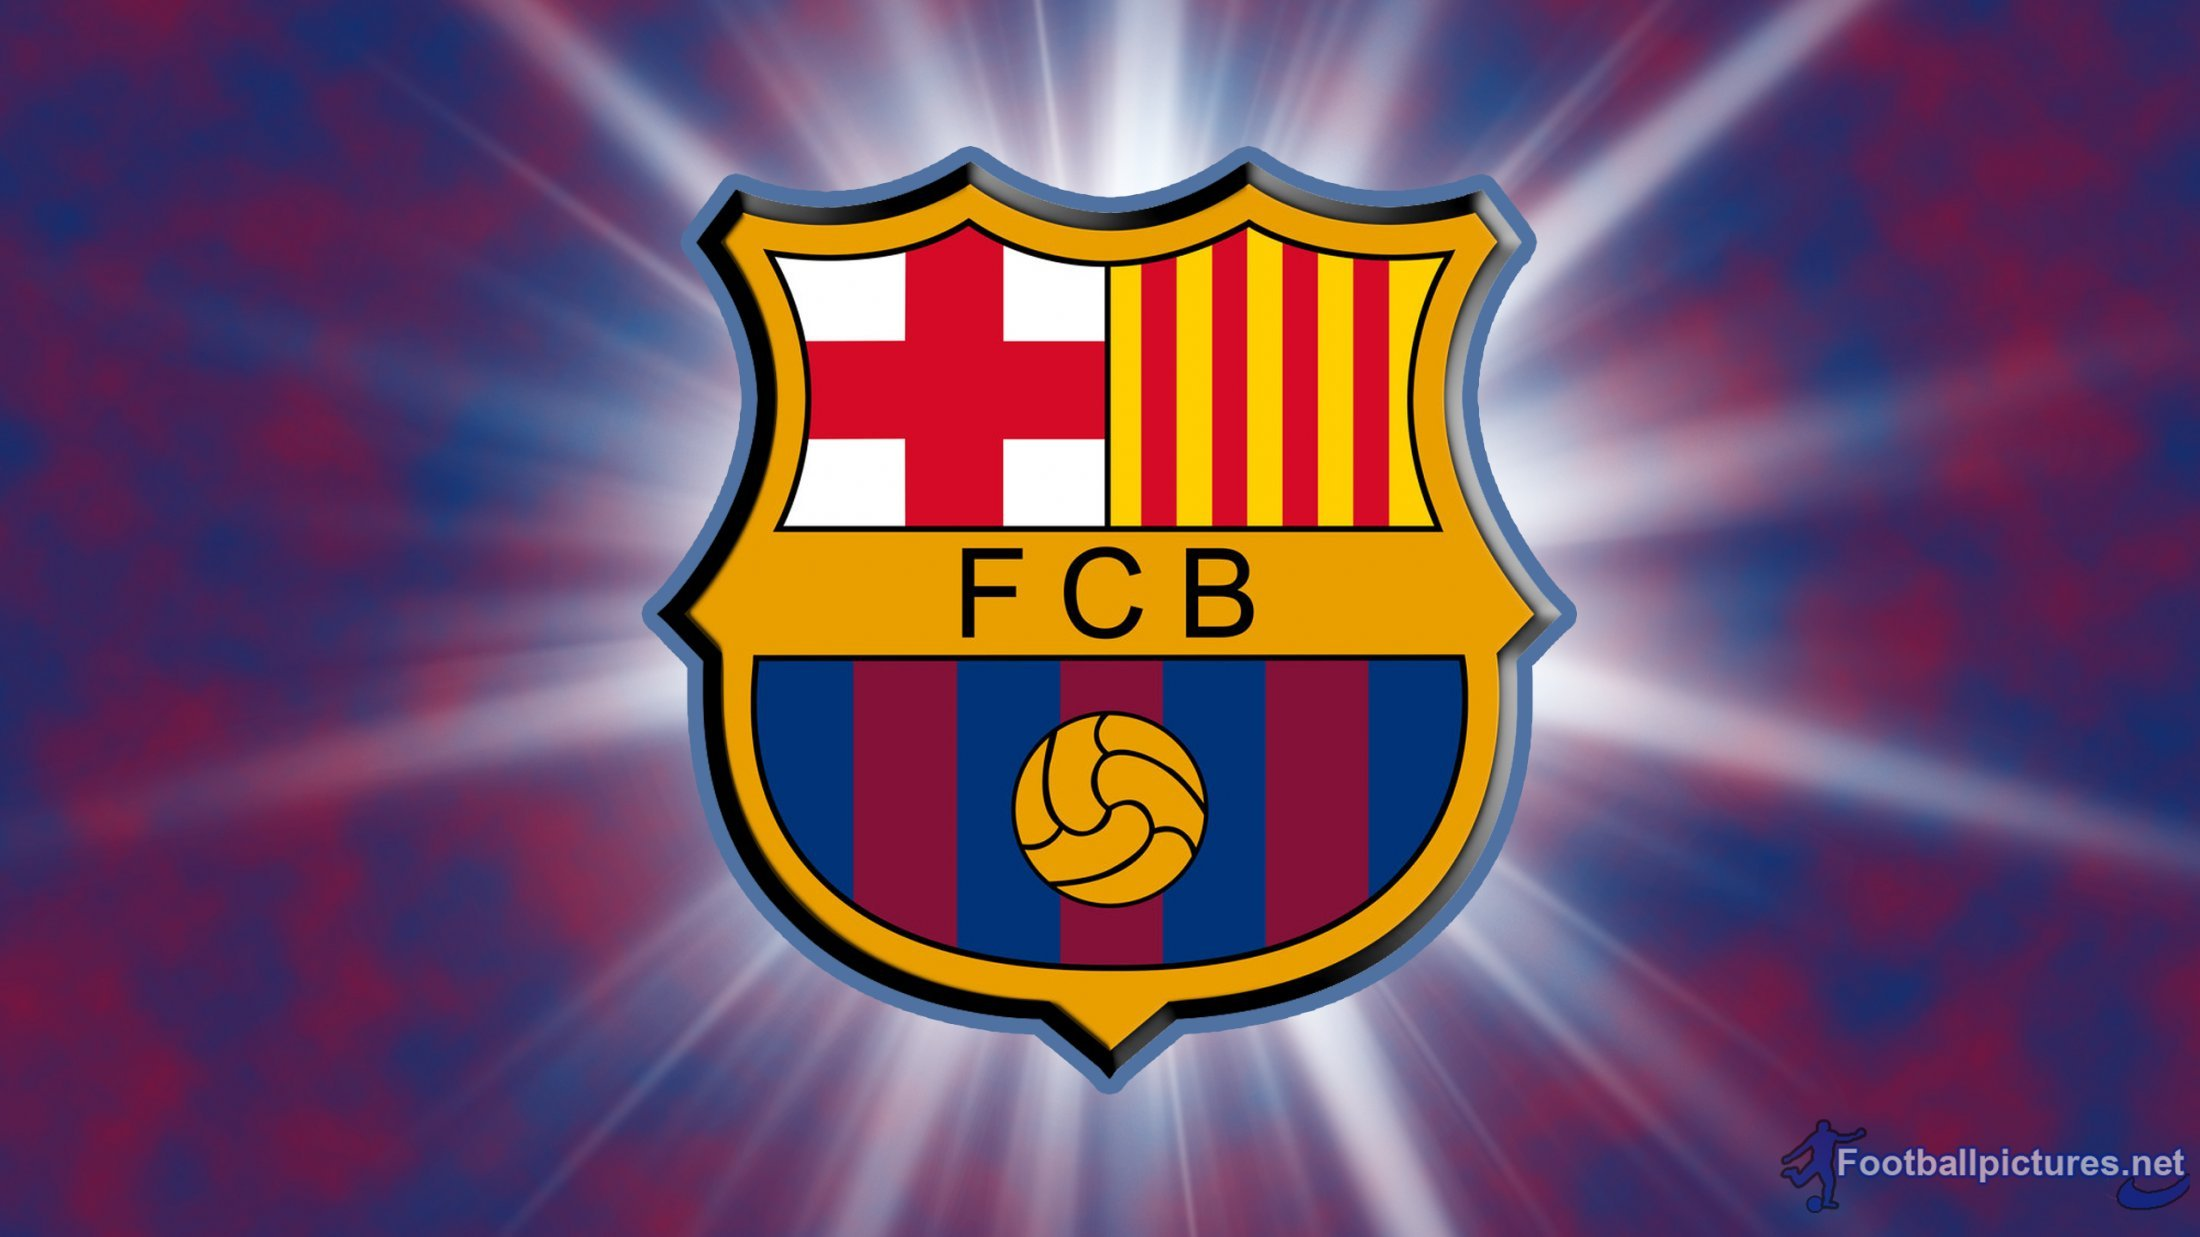 best barcelona fc 2560x1440 wallpaper Football Pictures and Photos 2200x1237